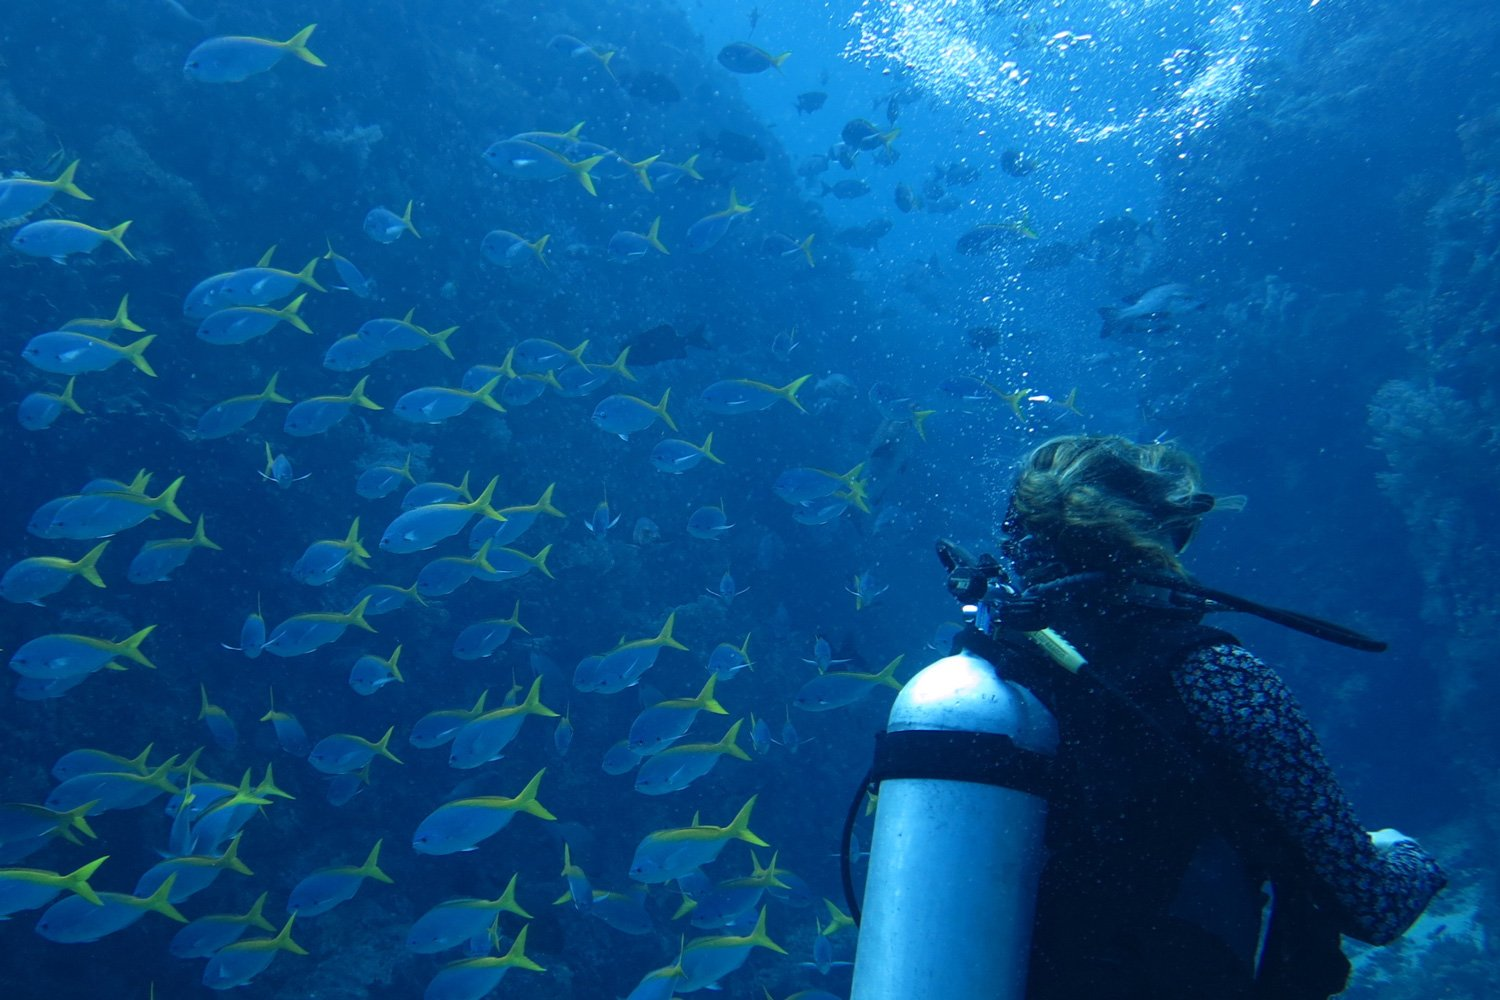 Diving amongst a school of fish